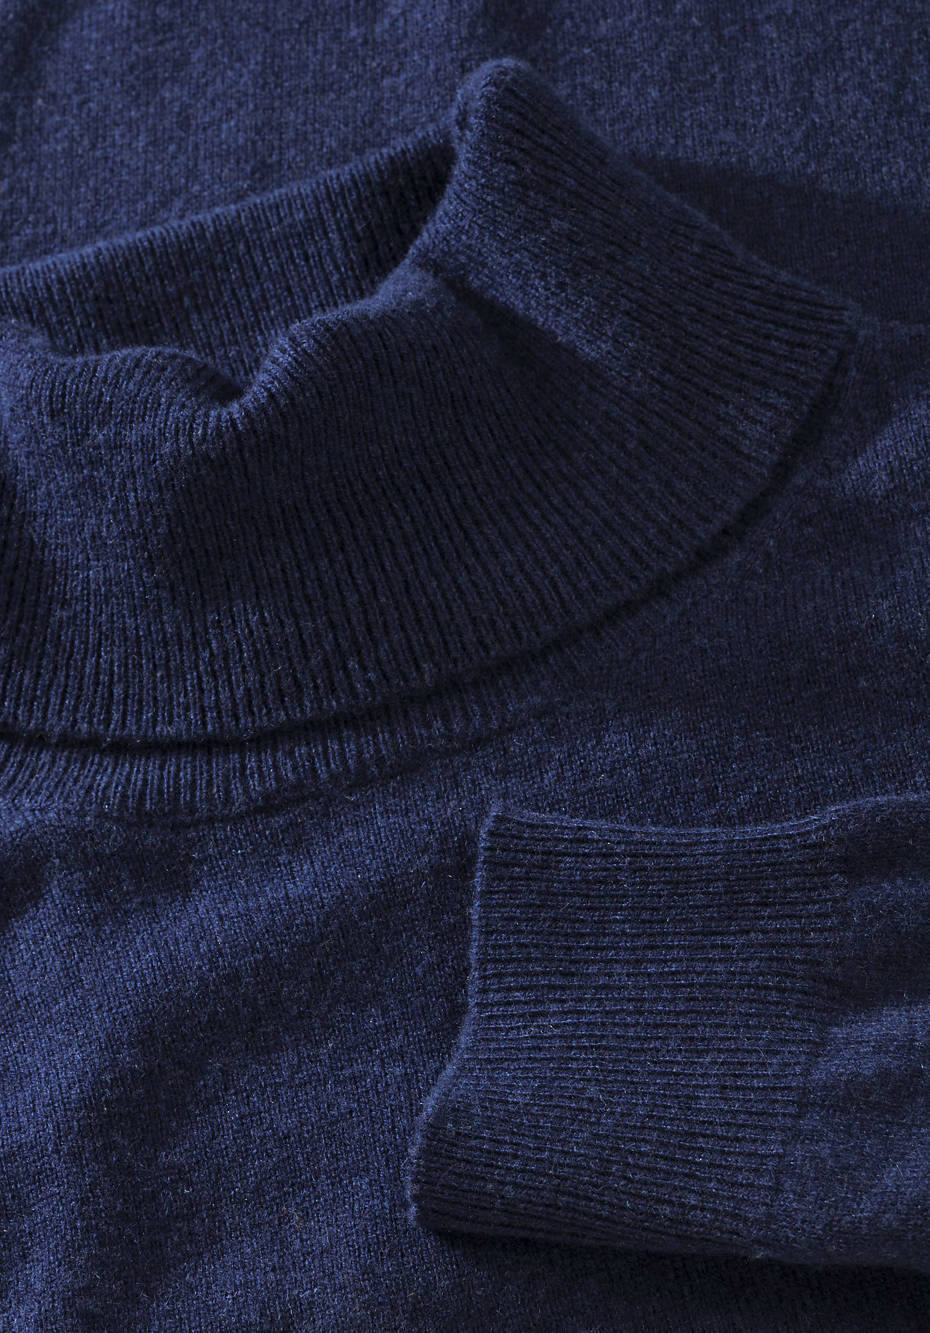 Turtleneck sweater made of organic new wool with cashmere